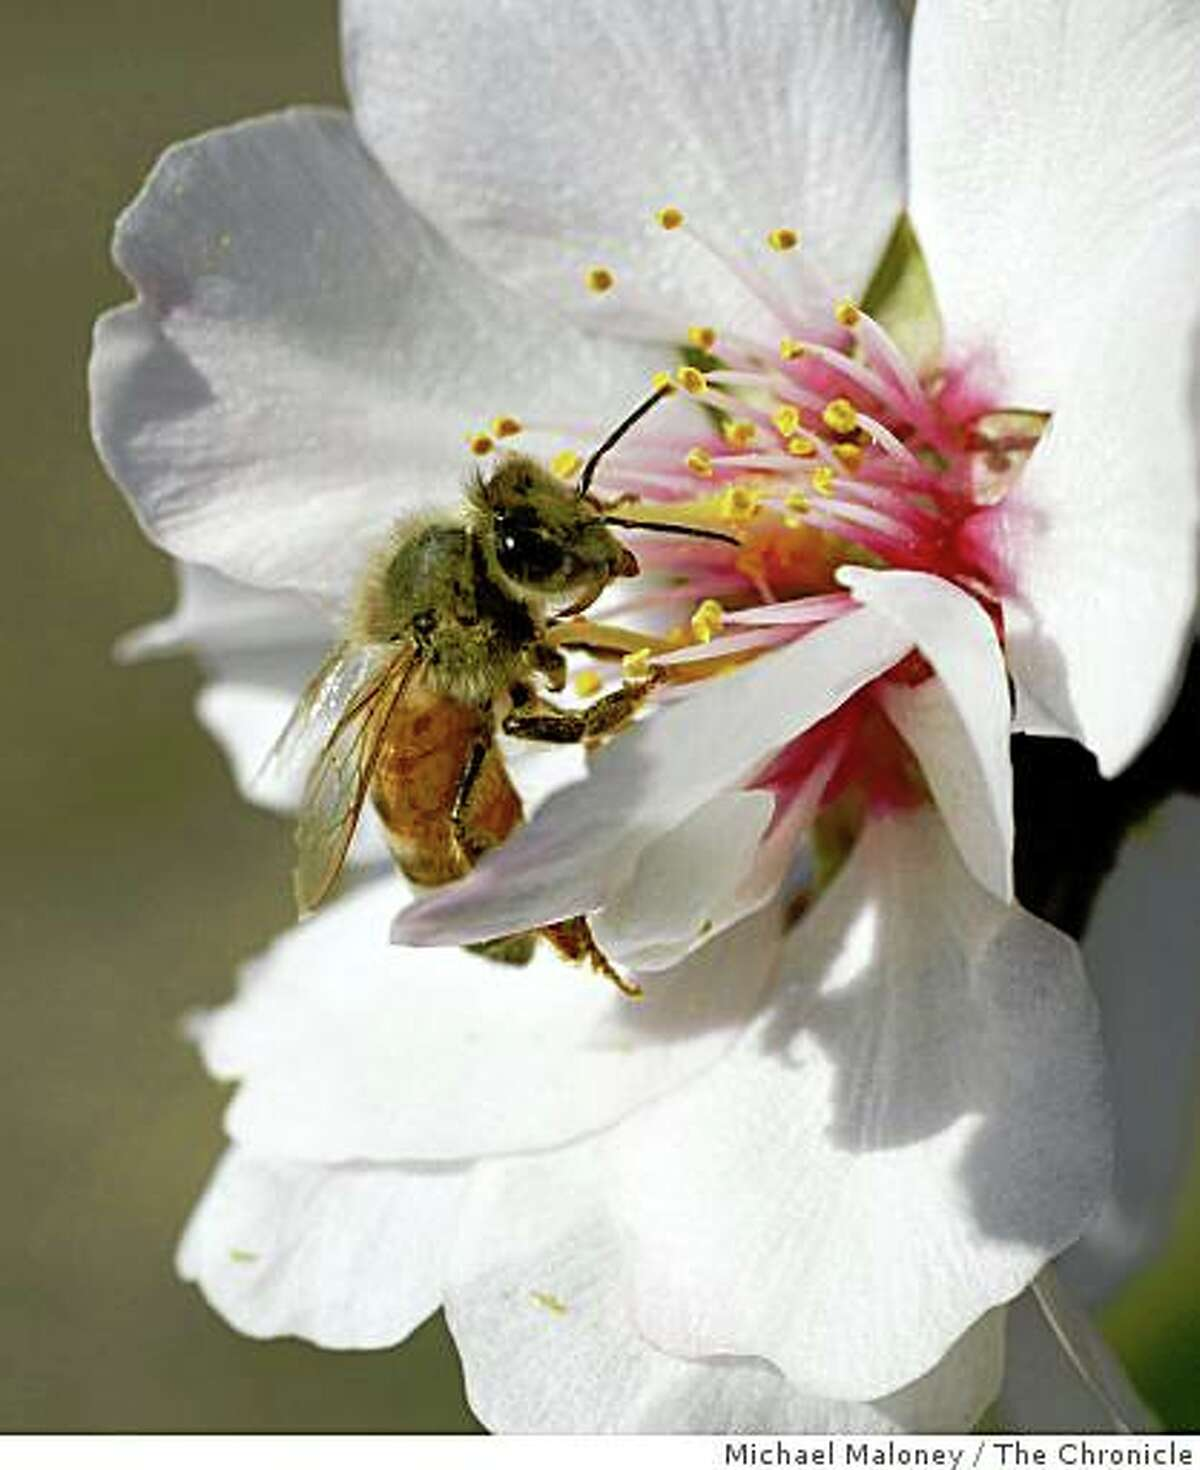 A special breed of honeybee from Arizona gathers pollen from an almond blossom in a Dixon, Calif. orchard on March 3, 2008.Researchers at UC Davis are experimenting with various breeds of bees hoping to find one that can resist the diseases and parasites that are affecting bees throughout the country, a huge threat to agriculture. Bees are needed to pollinate many of California's crops, including the almond trees now in full bloom. Photo by Michael Maloney / San Francisco Chronicle